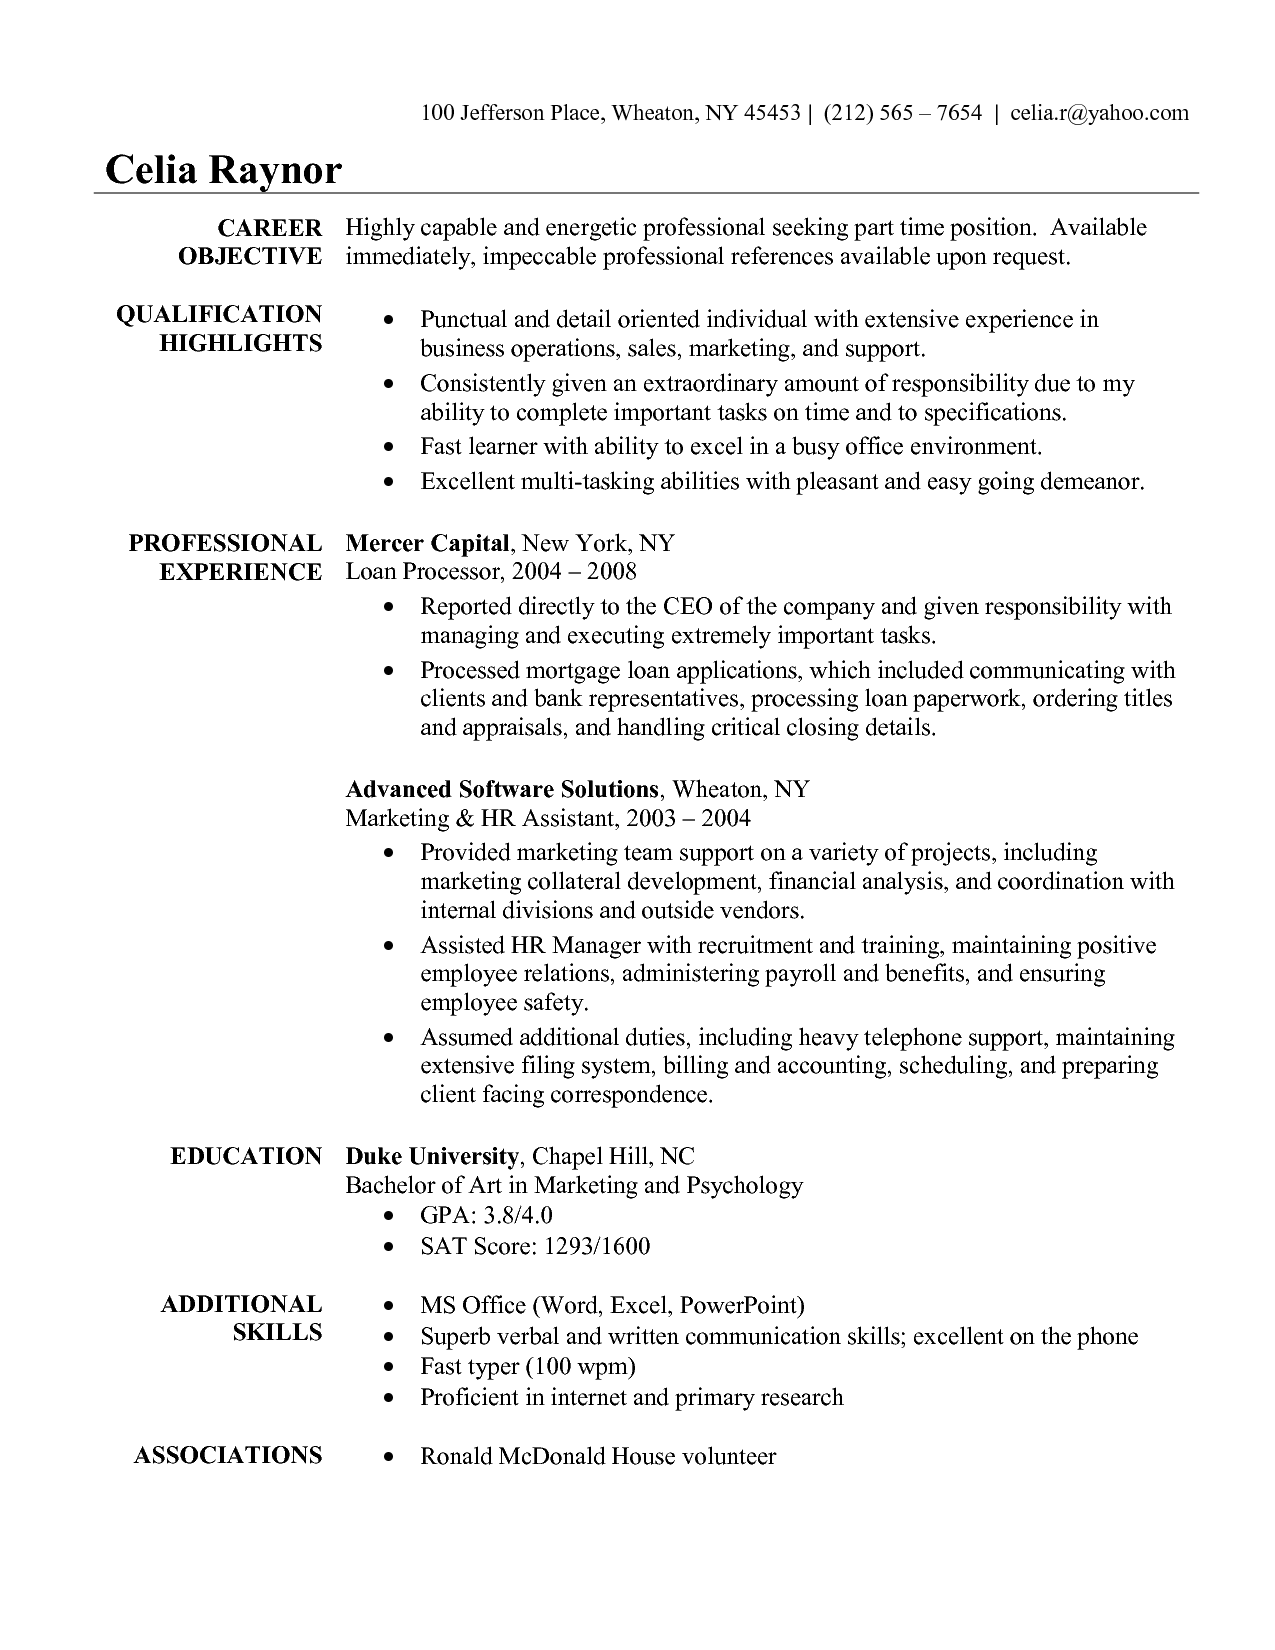 Sample Of Resumes Beauteous Resume Sample For Administrative Assistant Resume Samples For Review